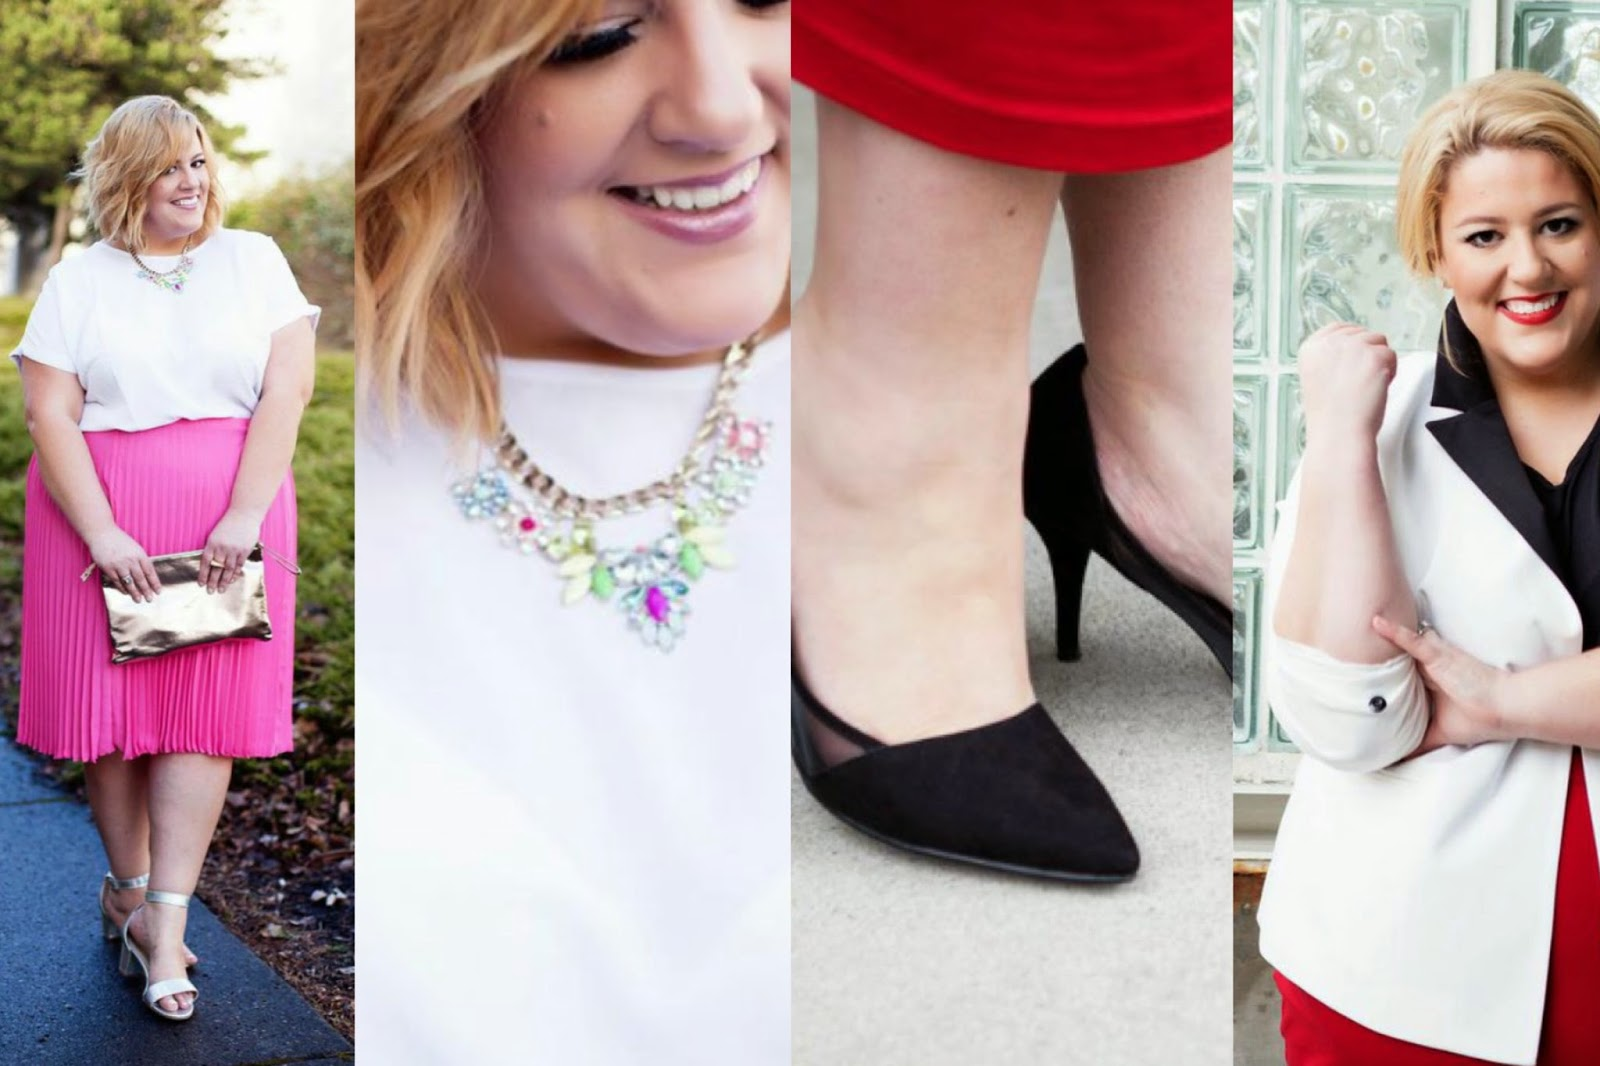 30PlusCurves OOTD Featuring SimplyBe on a Size 26/28 Plus Size Fashion Blogger Body Jessica Kane